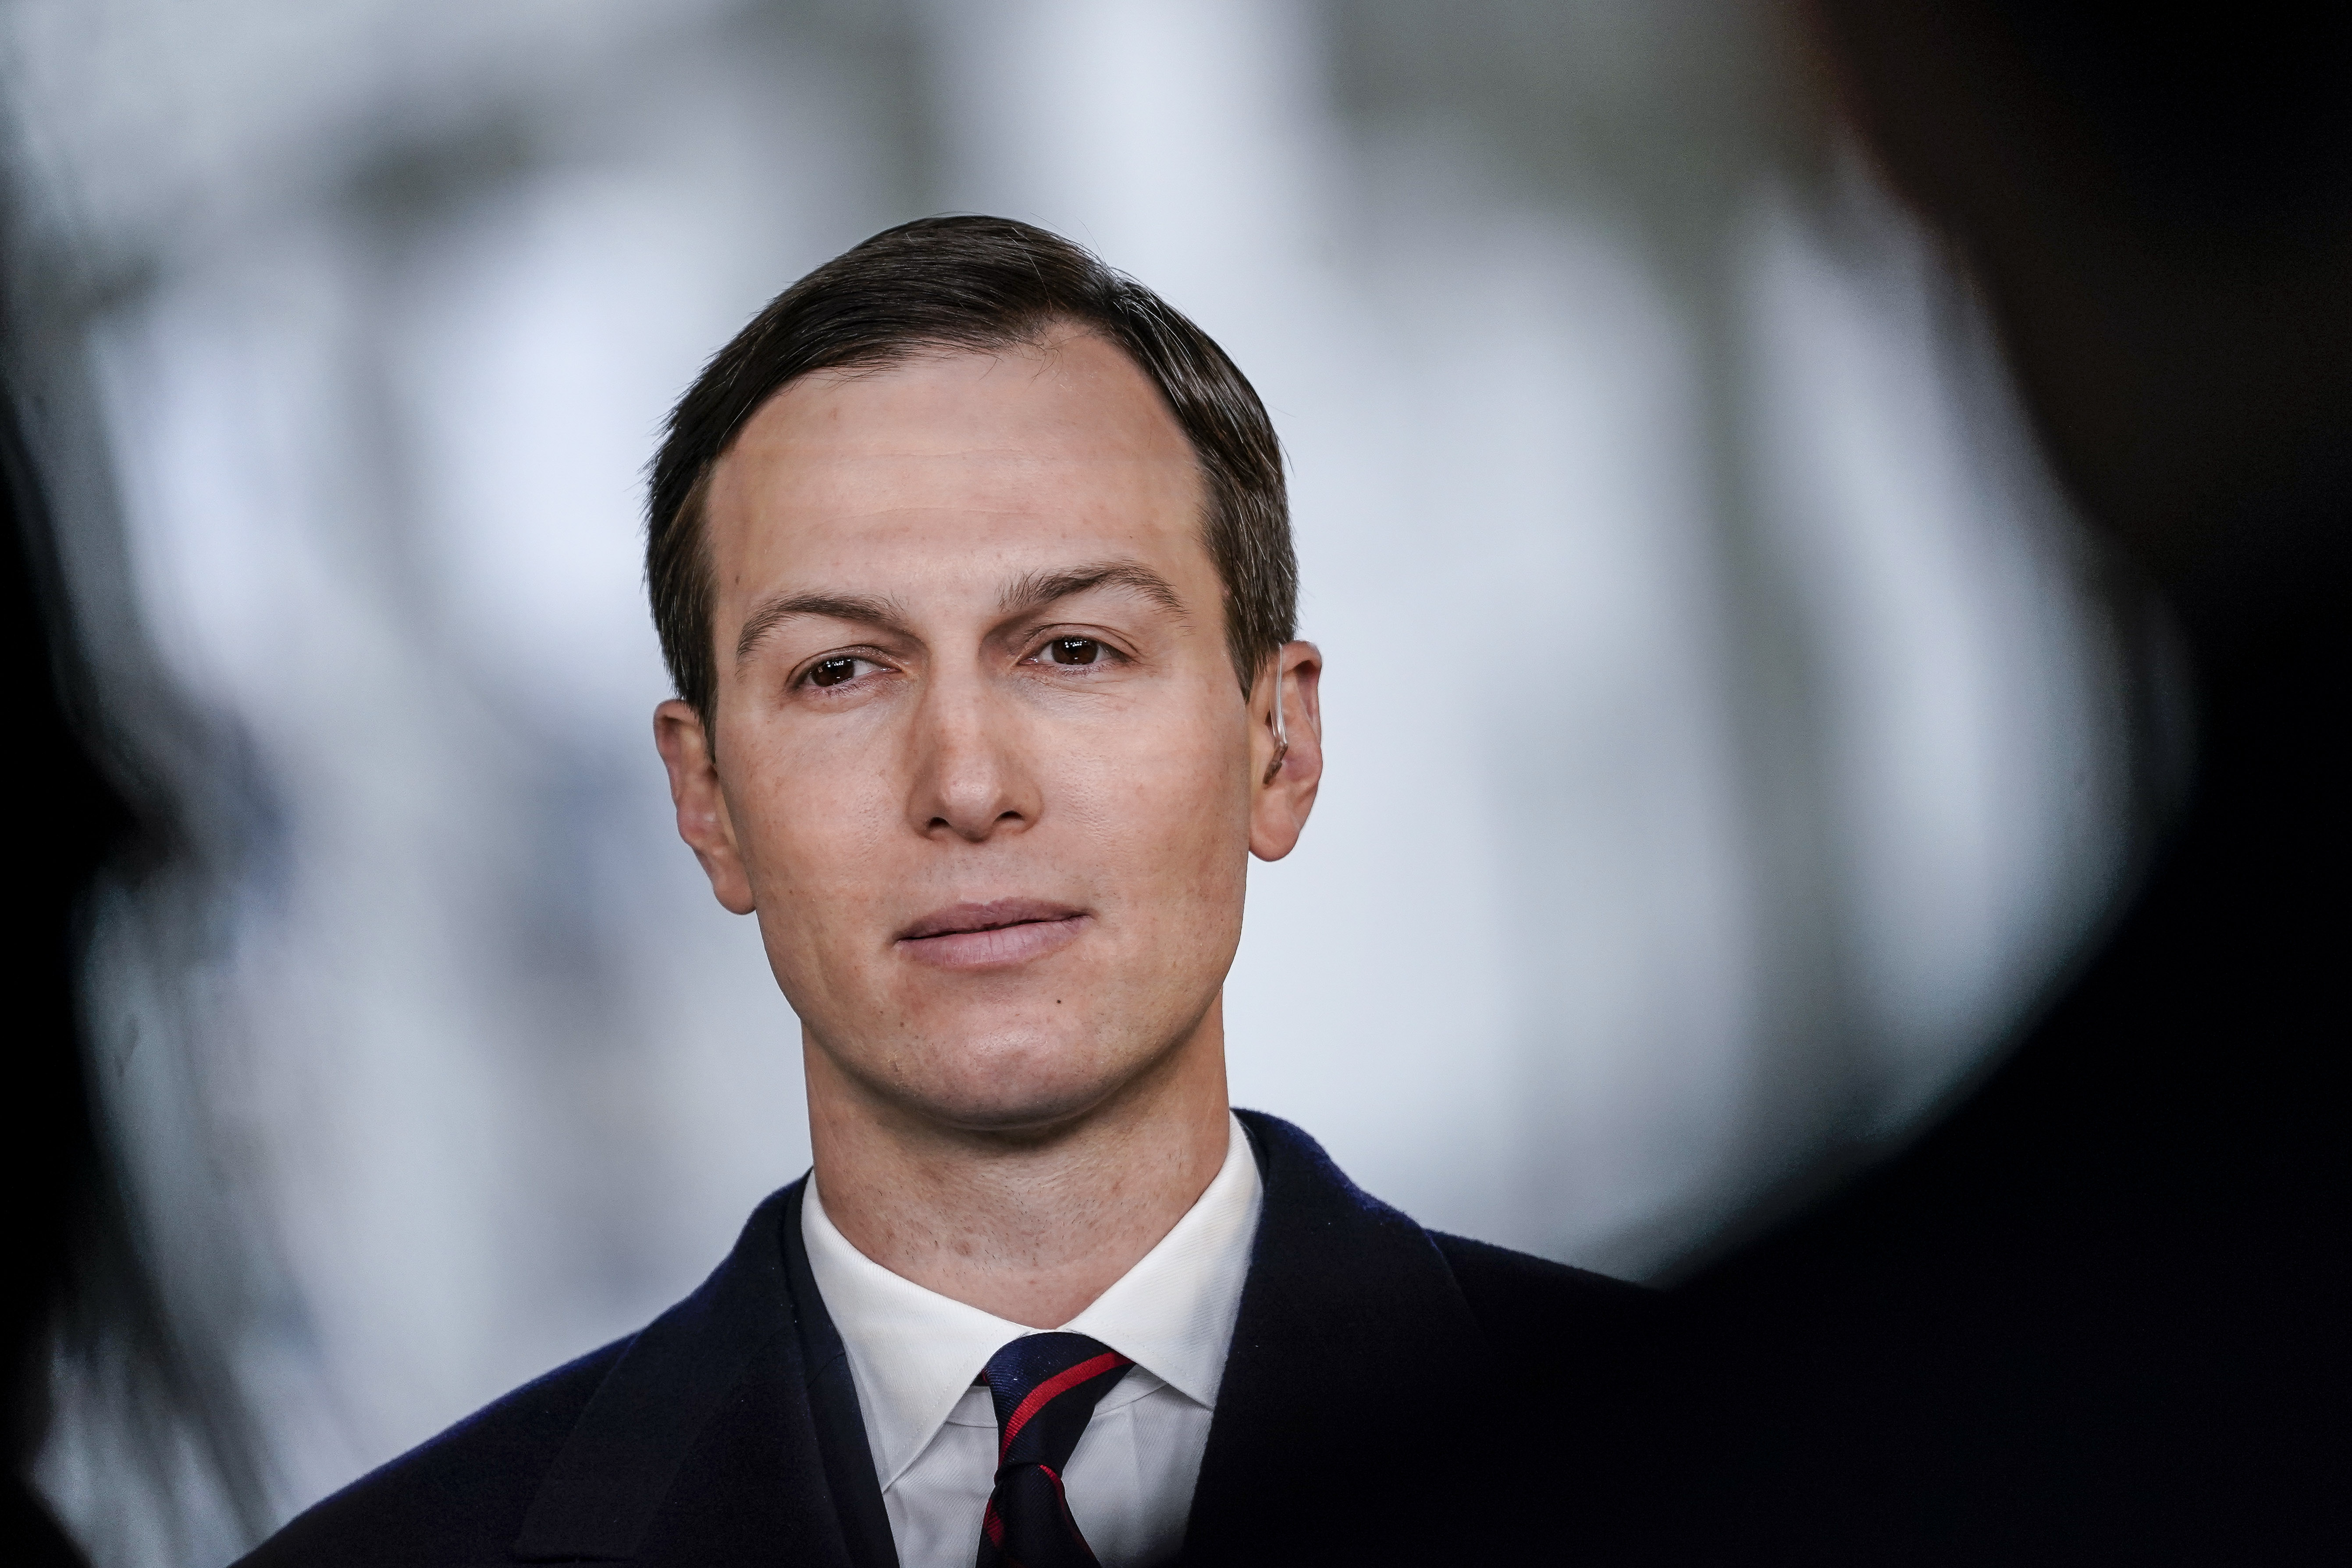 WASHINGTON, DC - JANUARY 29: Jared Kushner, Senior Advisor to President Donald Trump, stands for a television interview on FOX News outside the White House on January 29, 2020 in Washington, DC. Yesterday, President Trump released details of his administration's long-awaited Middle East peace plan to resolve the Israeli-Palestinian conflict, which was spearheaded by Kushner. (Photo by Drew Angerer/Getty Images)